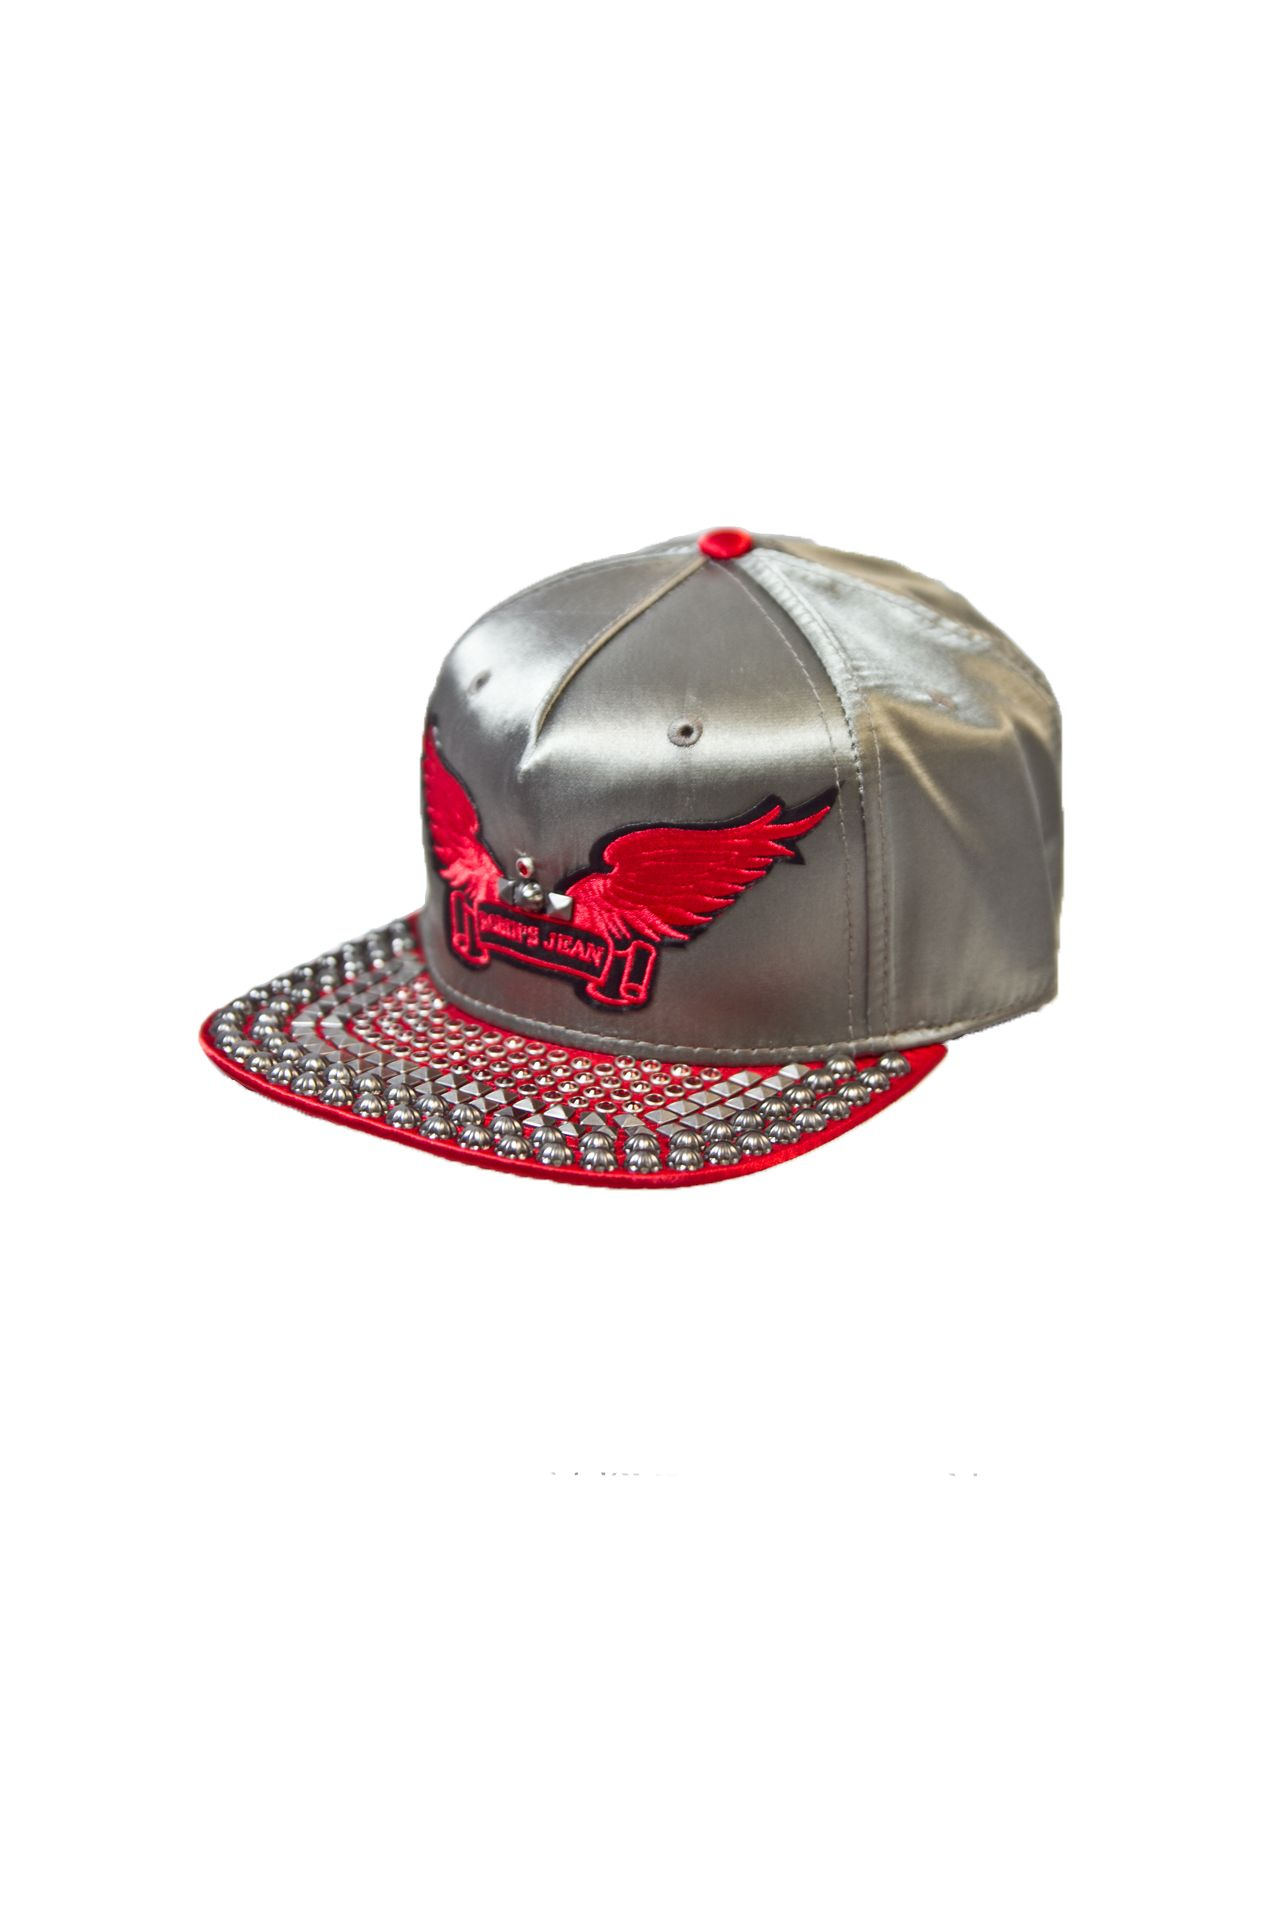 SILVER SATIN CAP 2 TONES WITH RED CRYSTALS AND SILVER PYRAMIDS, STUDS.SIGNATURE WINGS